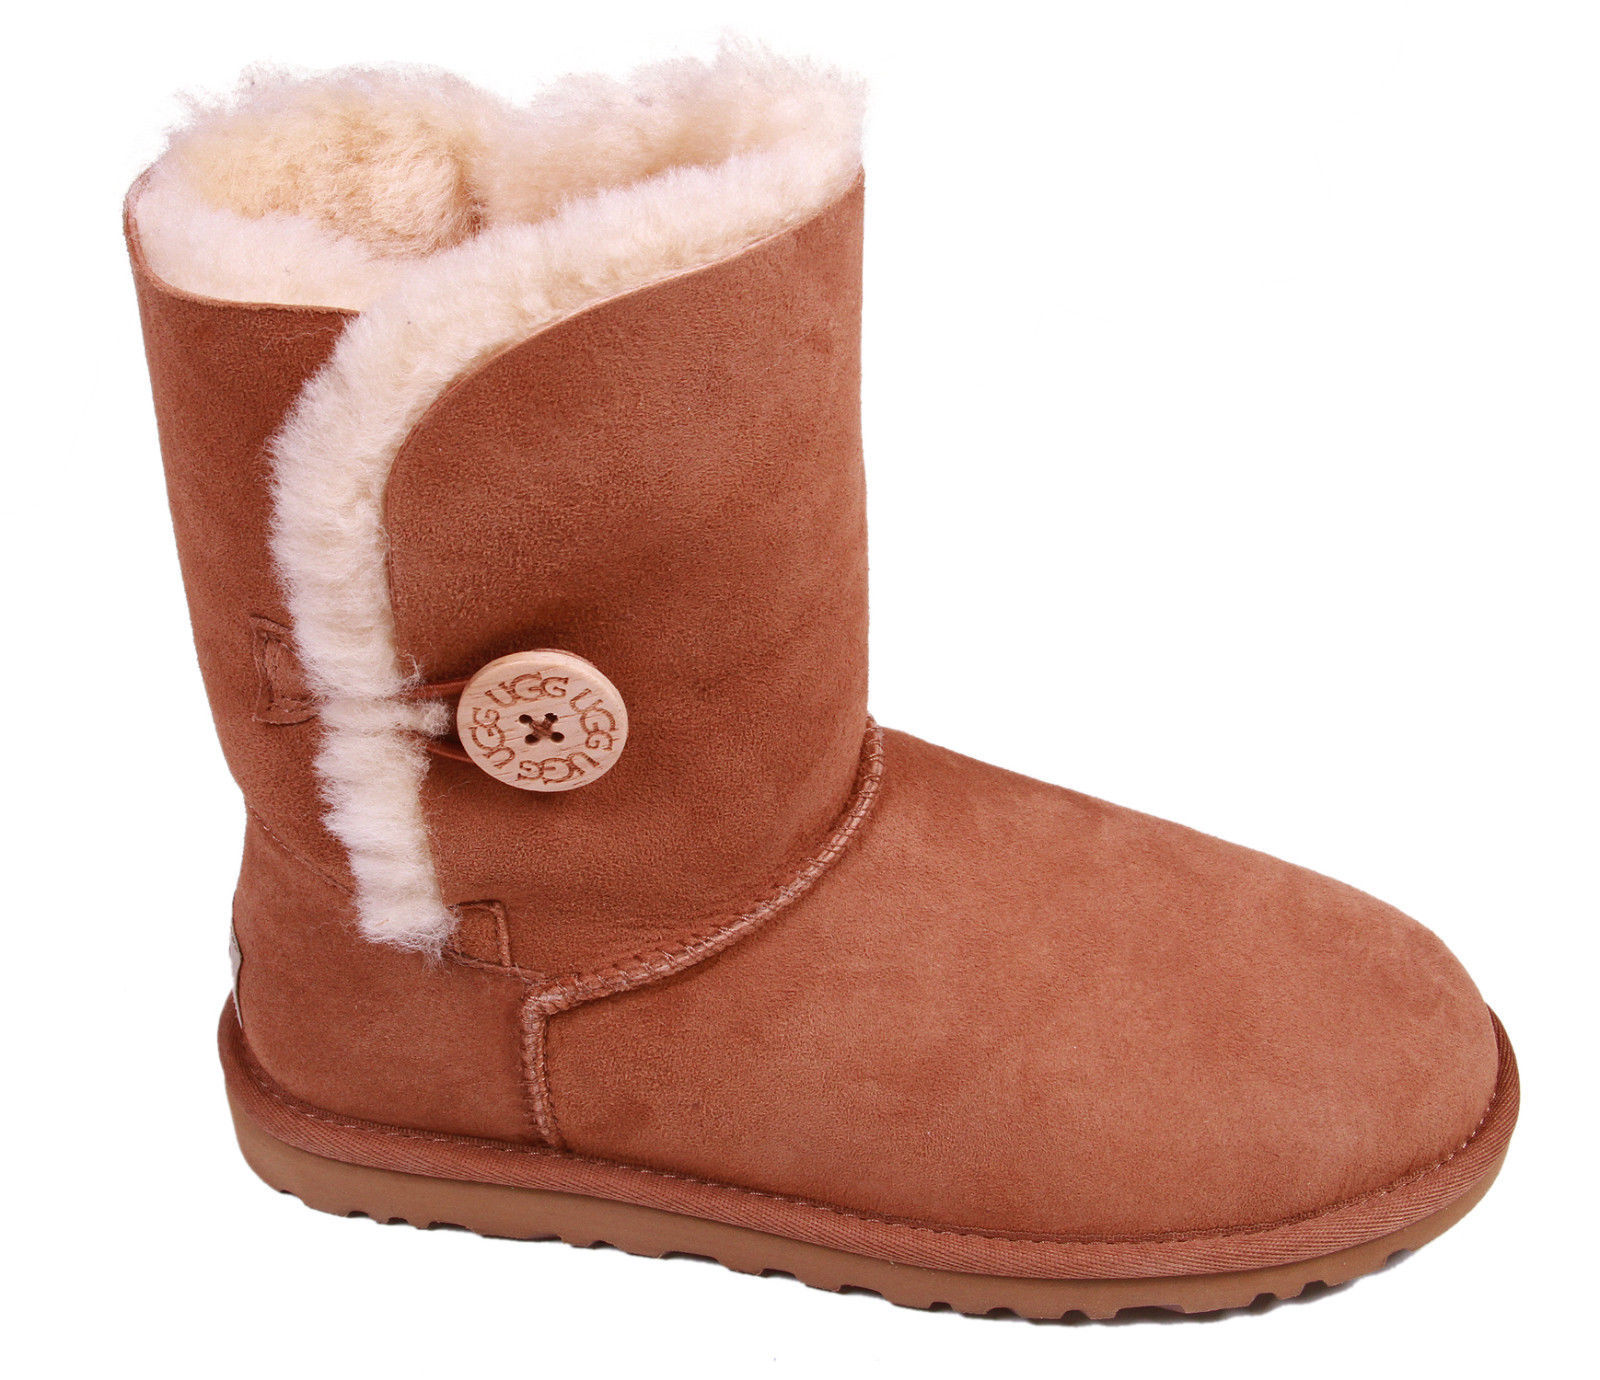 price of uggs